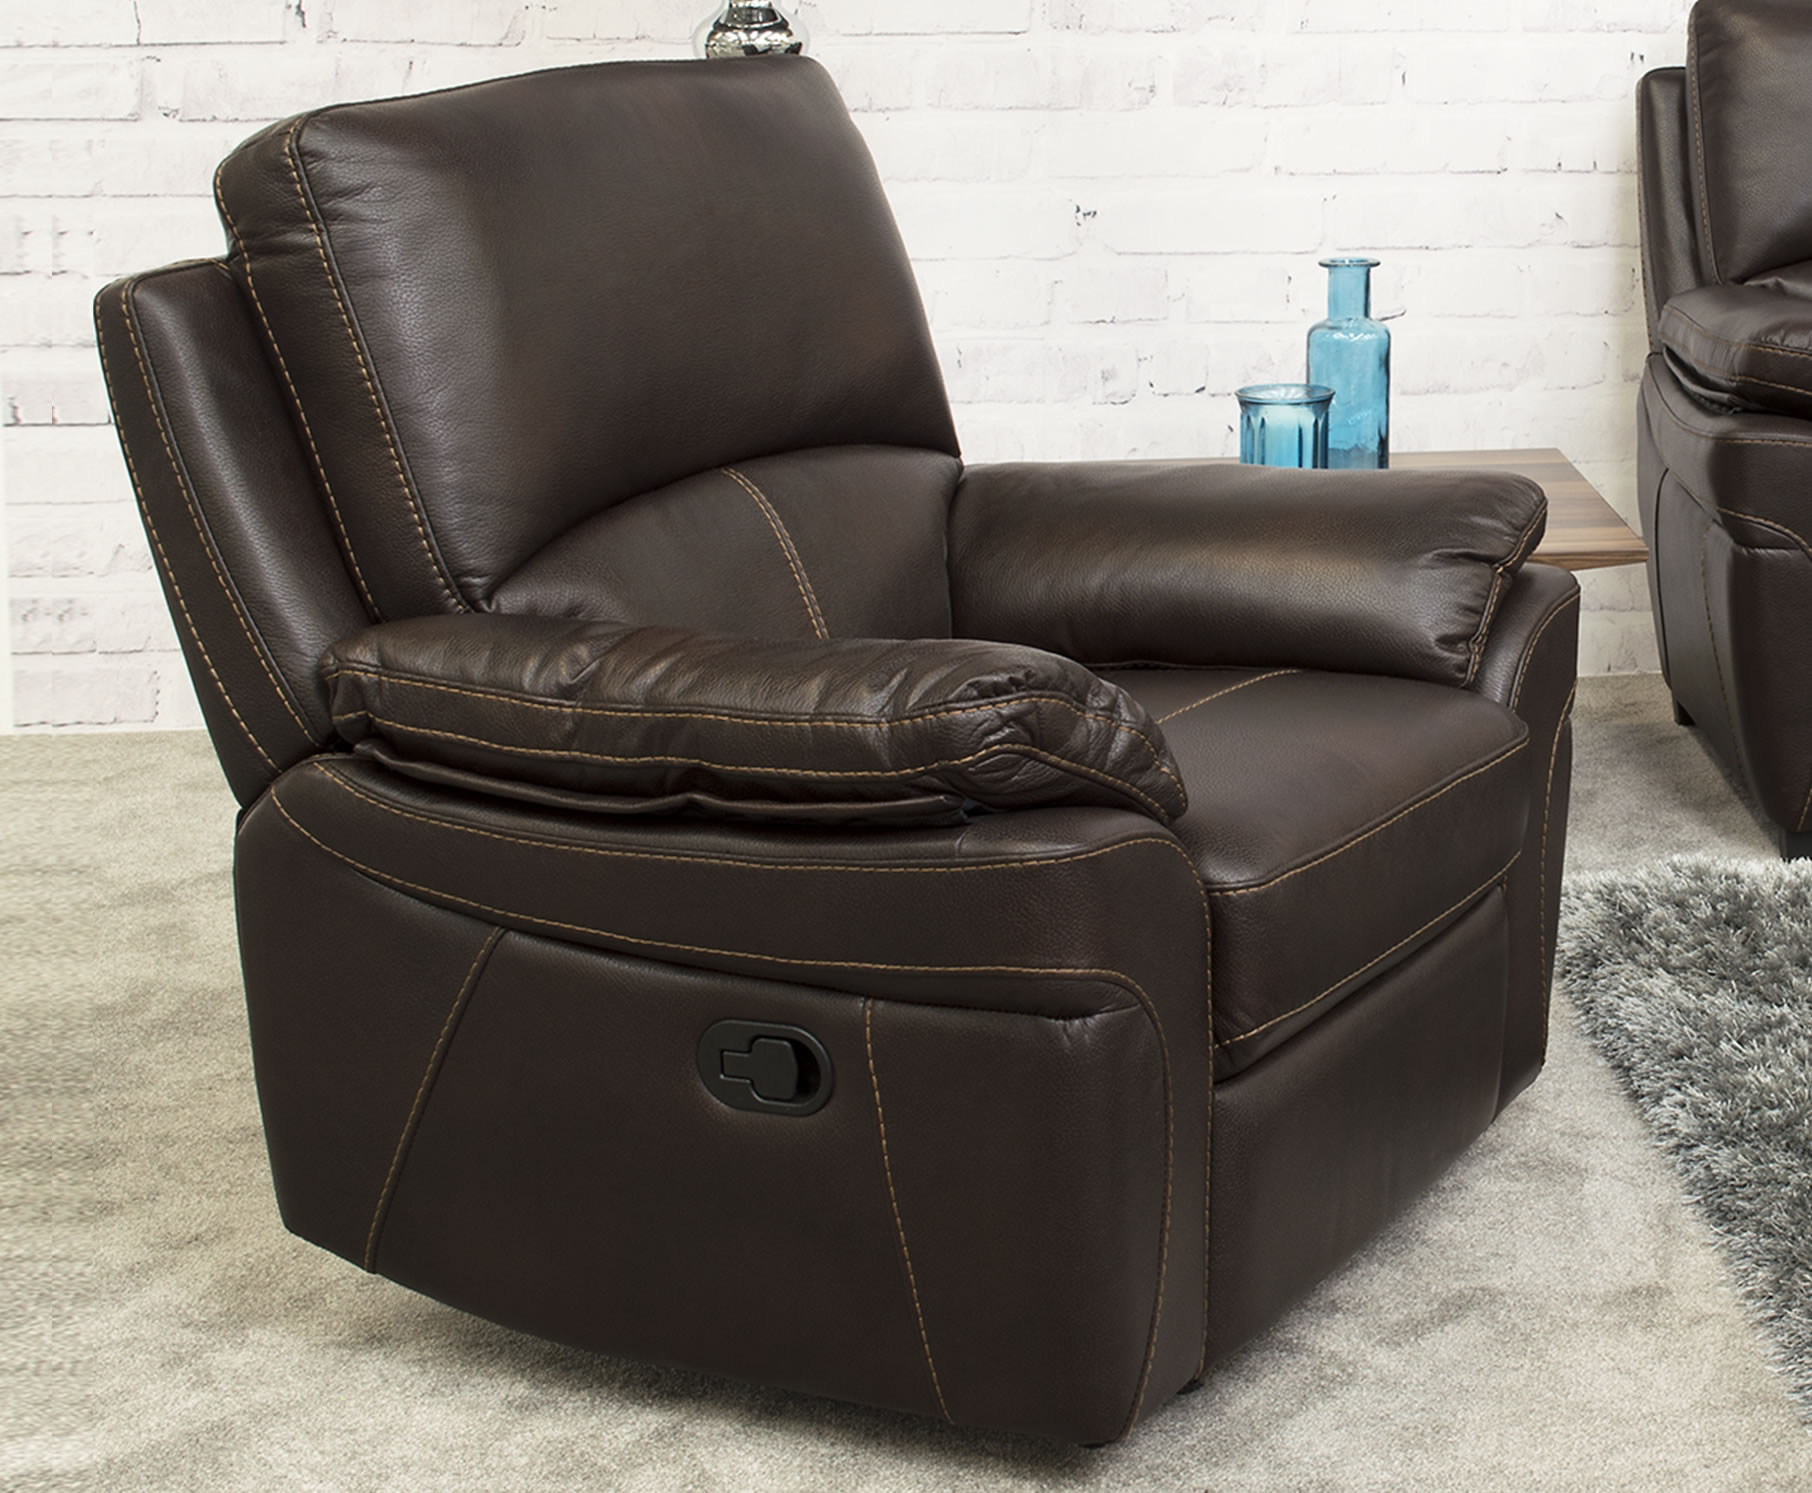 brown leather recliner sofa uk stretch pique full sleeper slipcover belvedere look arm chair